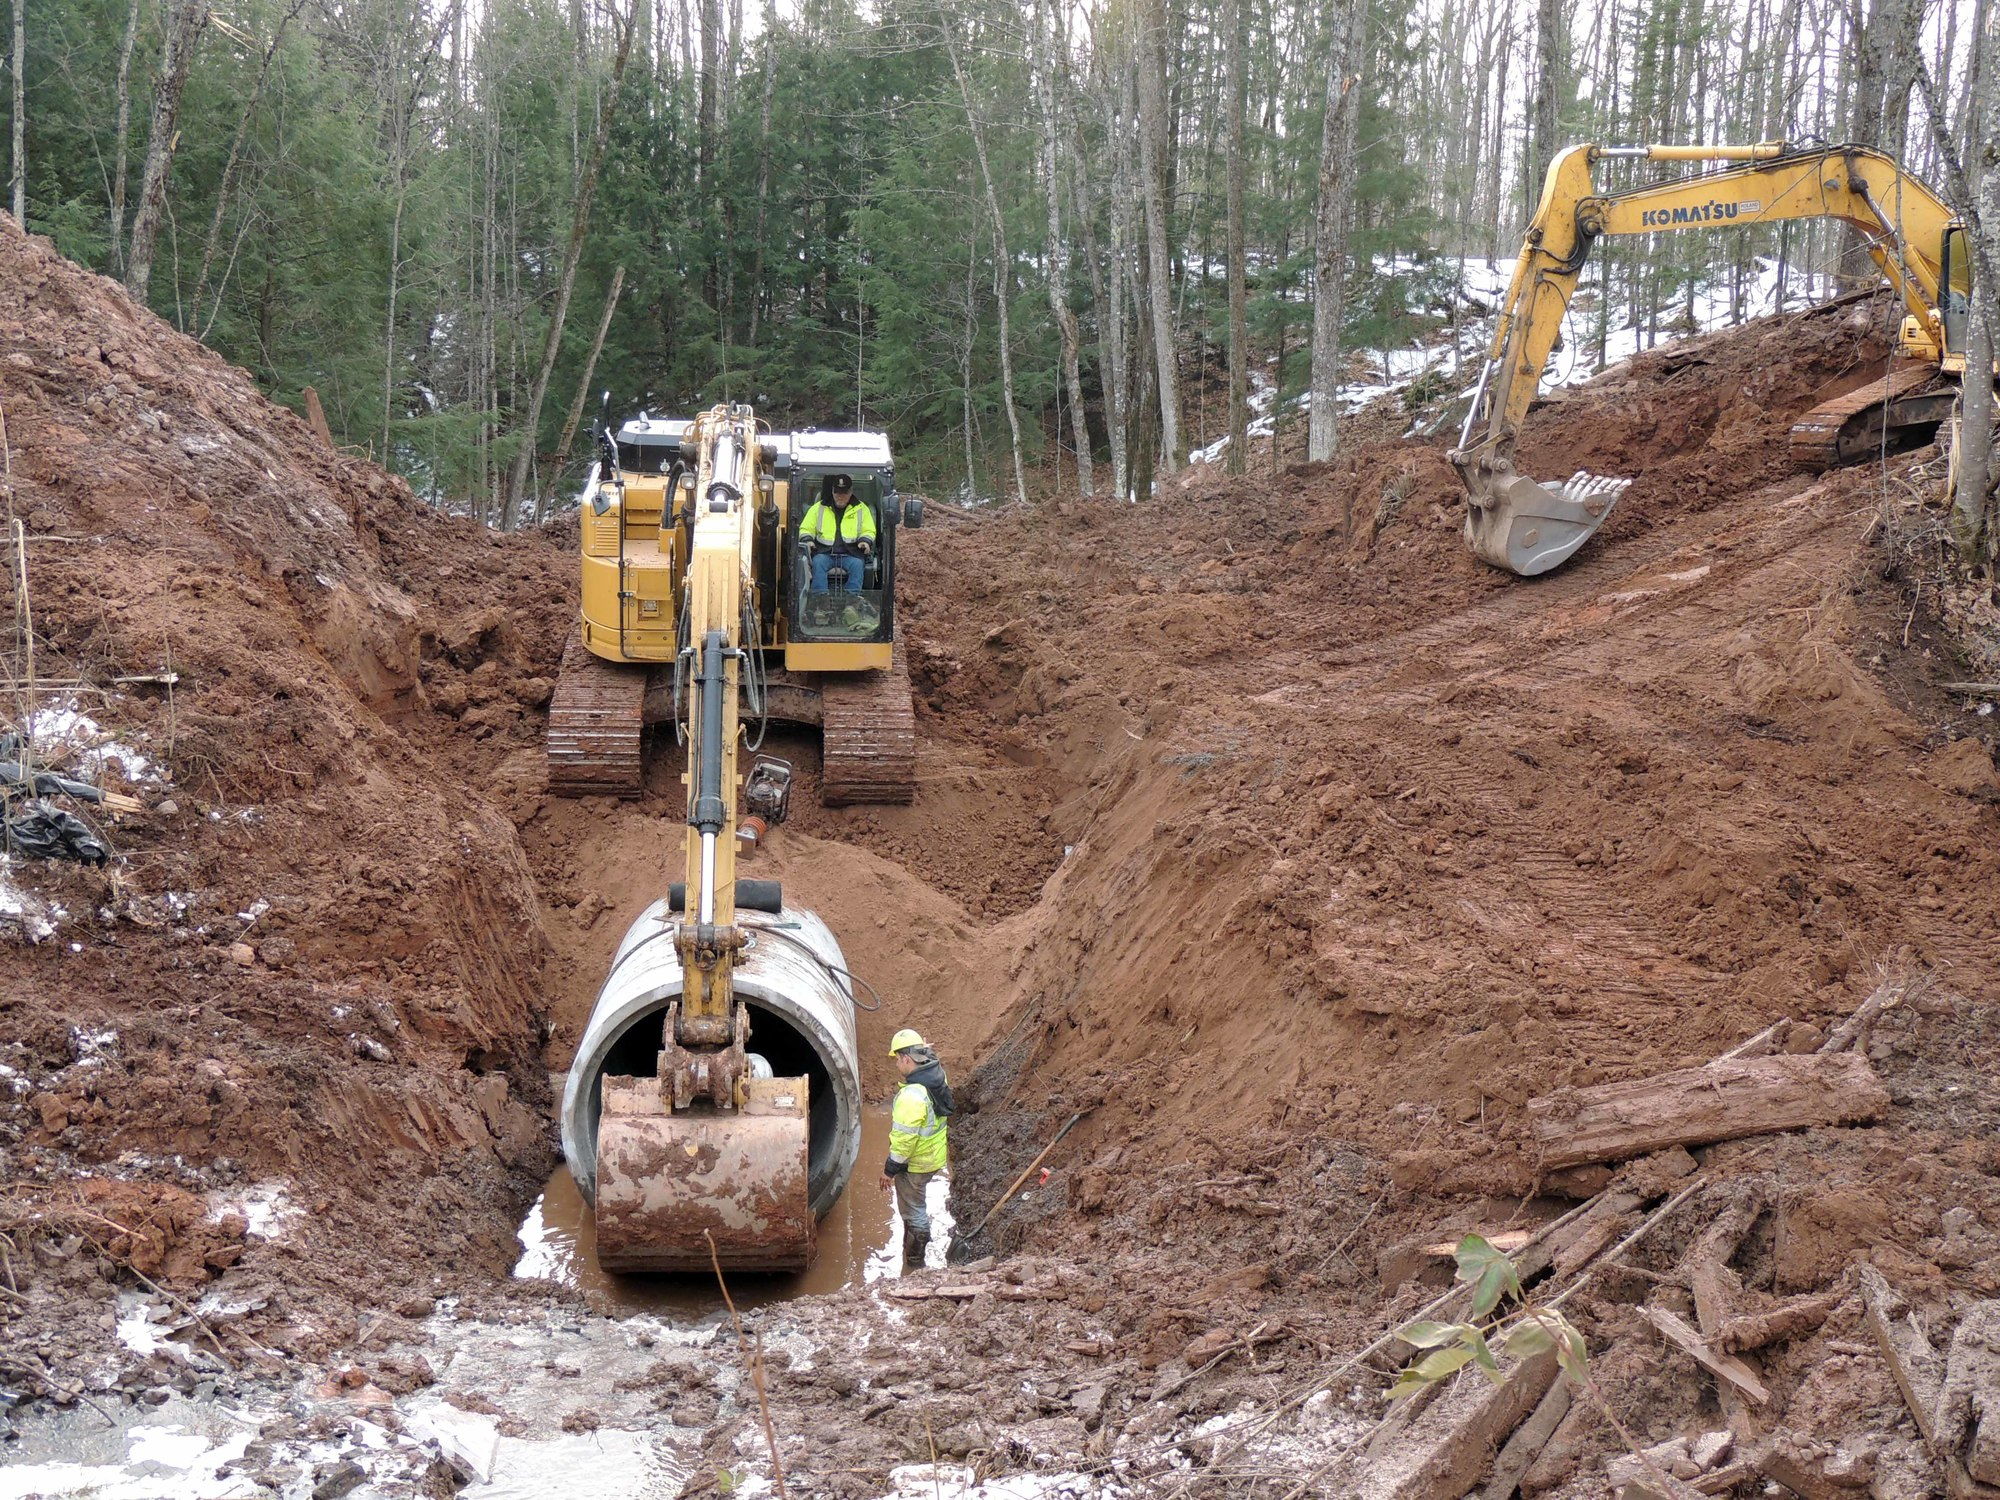 Workers put one of the final sections of culvert in place. (Photo courtesy Don Helsel, MI-TRALE)